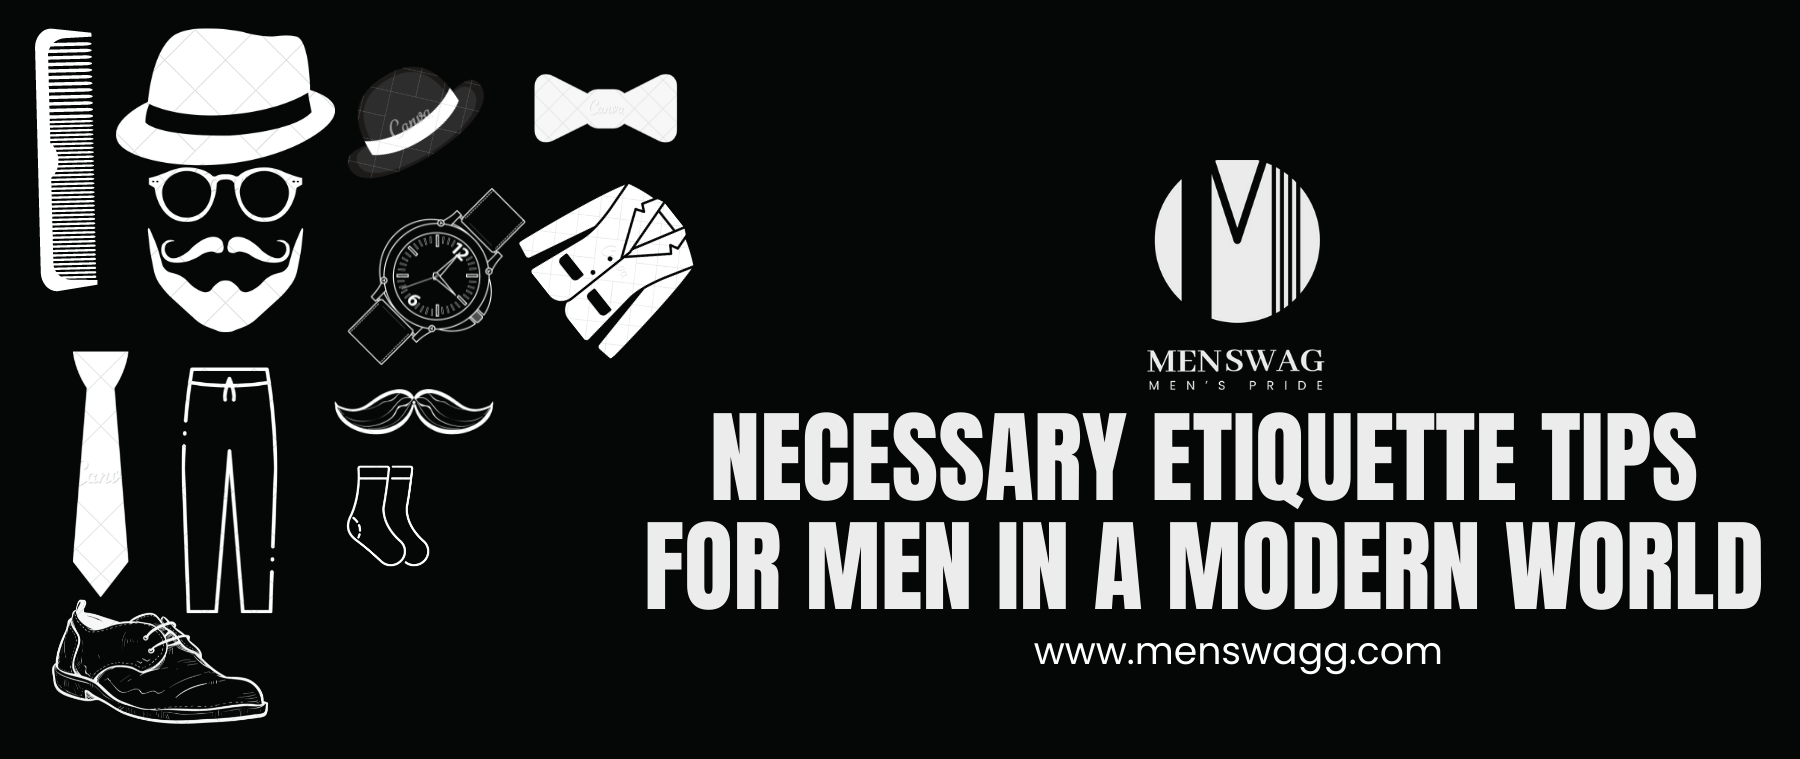 MEN SWAG THE COMPLETE ETIQUETTE GUIDE FOR THE MODERN GENTLEMAN (4)